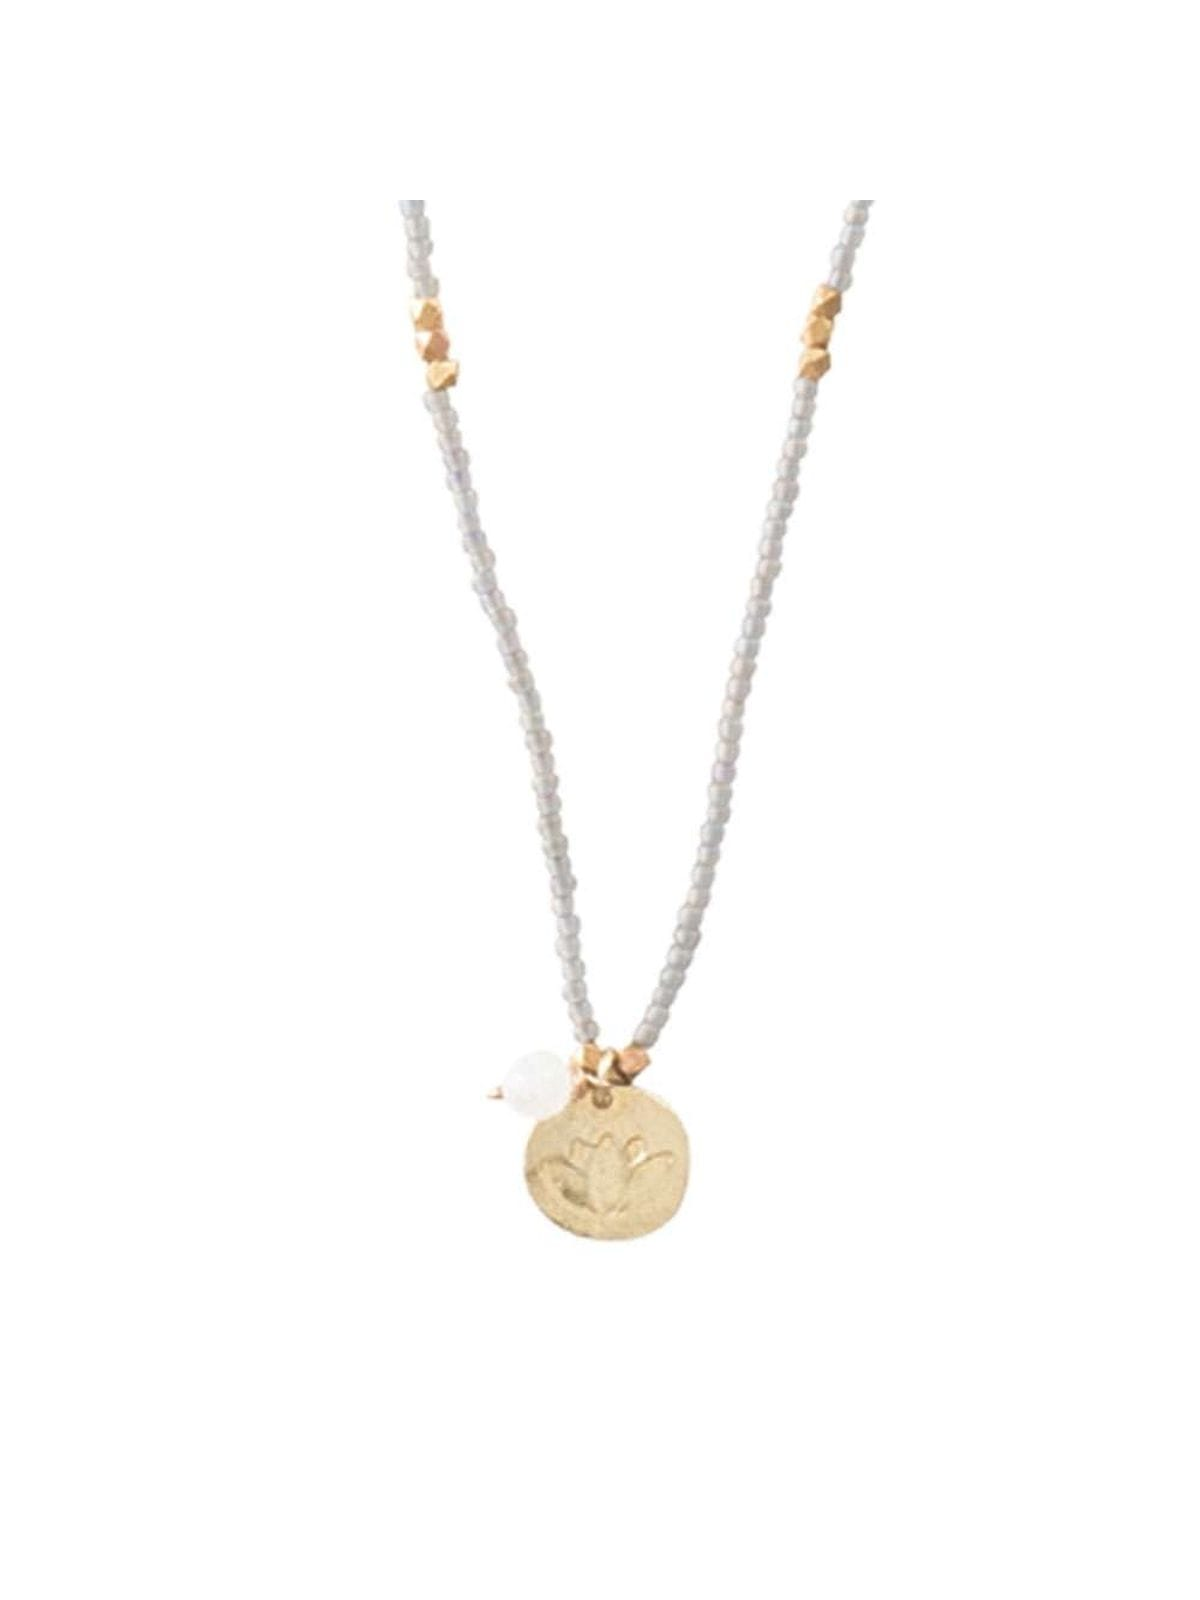 bl22359-fall-moonstone-lotus-coins-gold-necklaceSt8Er7SmOjwEp_600x600@2x_1200x1600